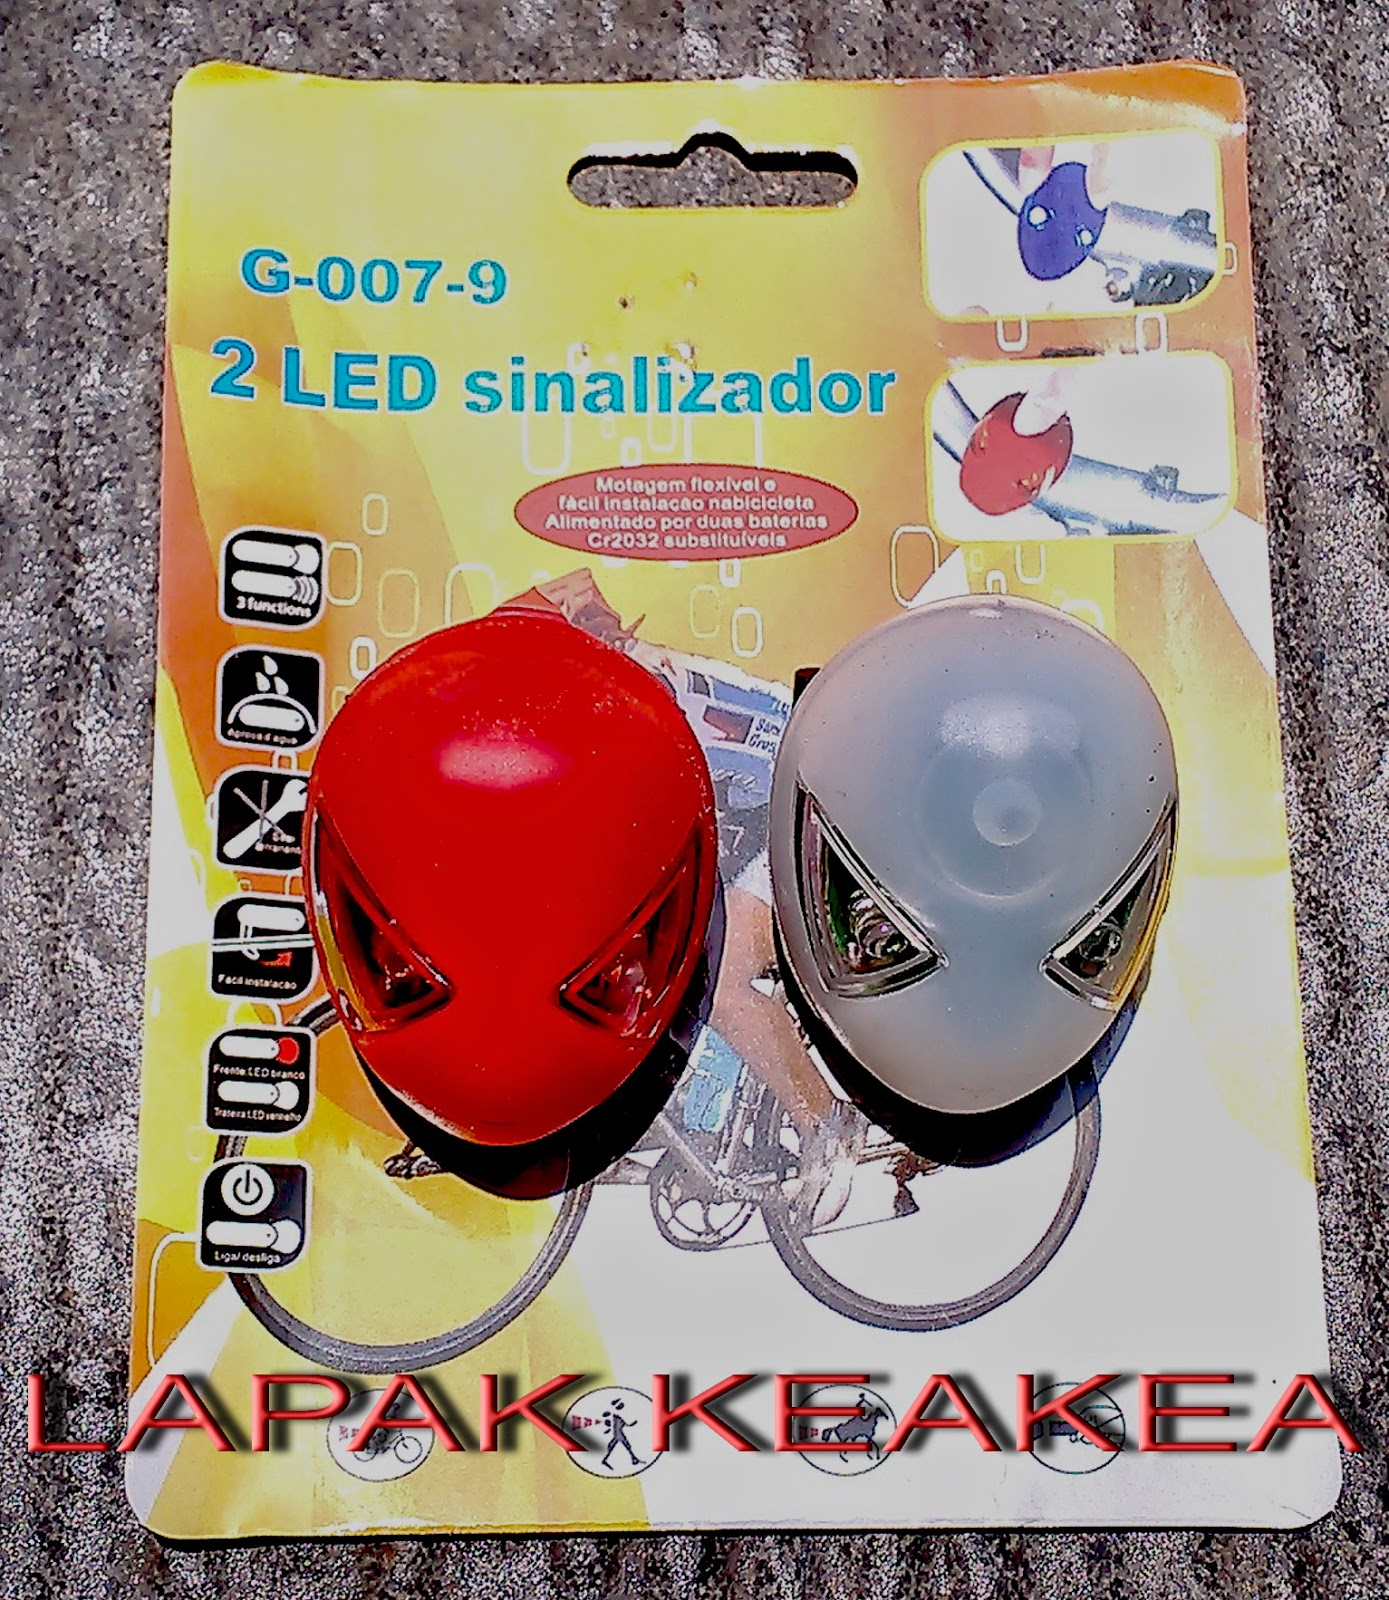 http://lapakkeakea.blogspot.com/search/label/lampu%202in1%20silicone%20parade